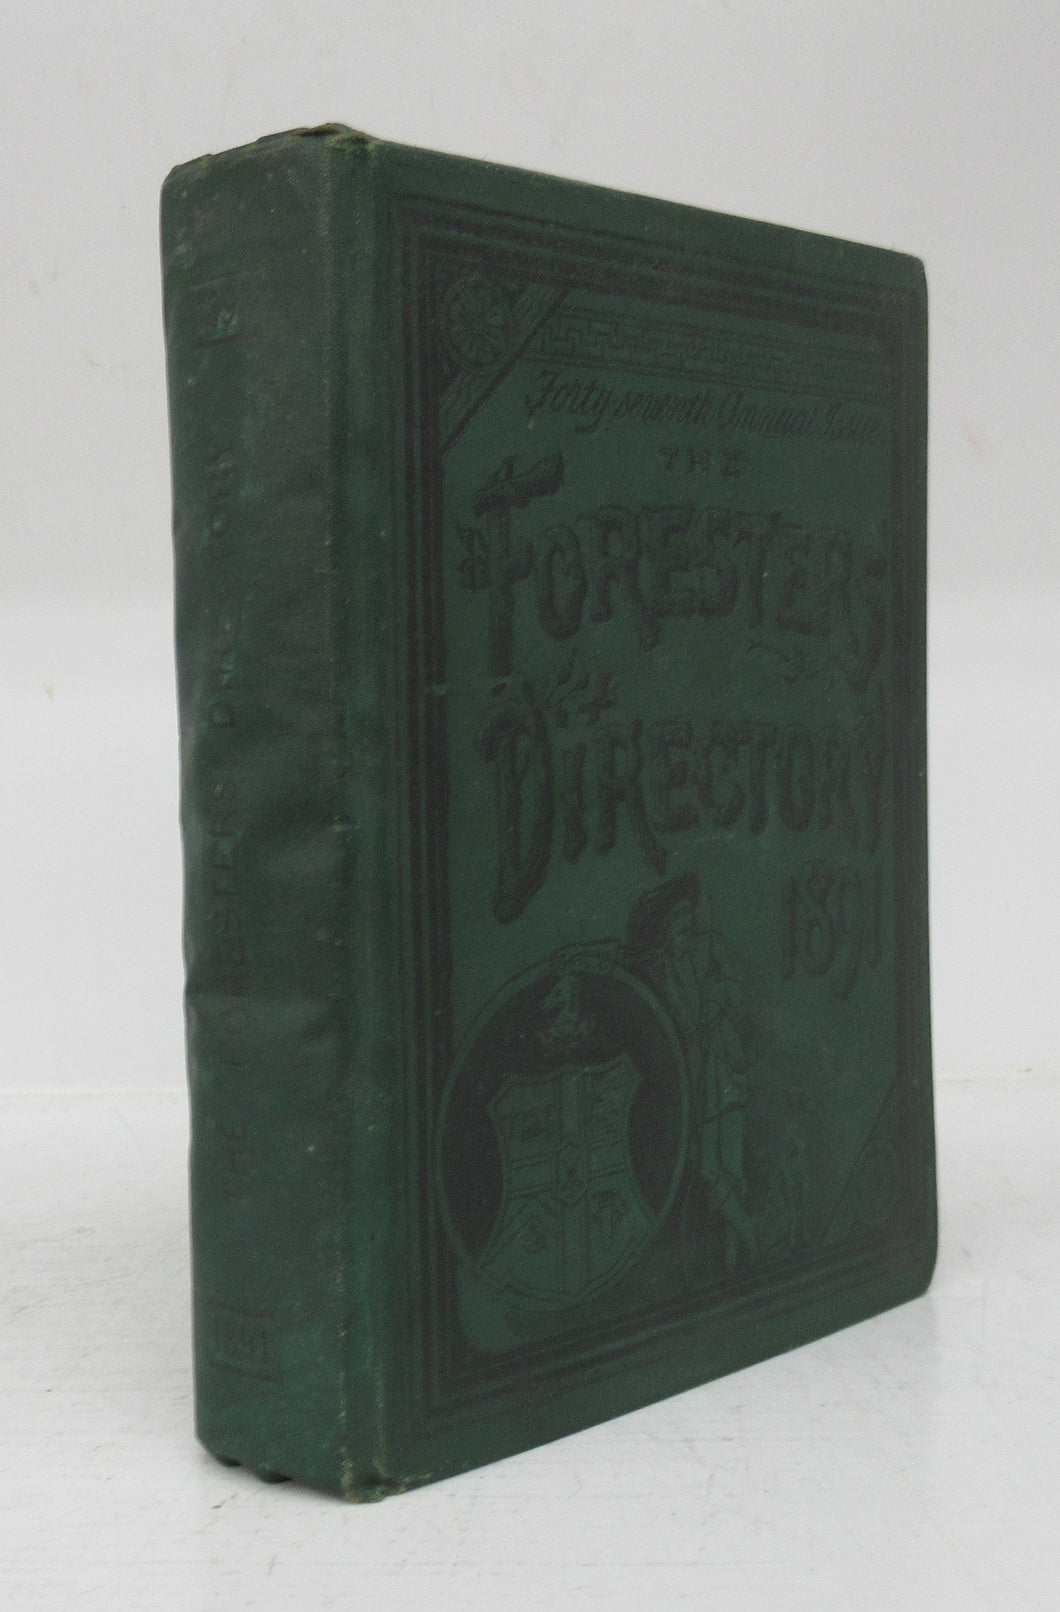 Directory of the Ancient Order of Foresters' Friendly Society for 1891